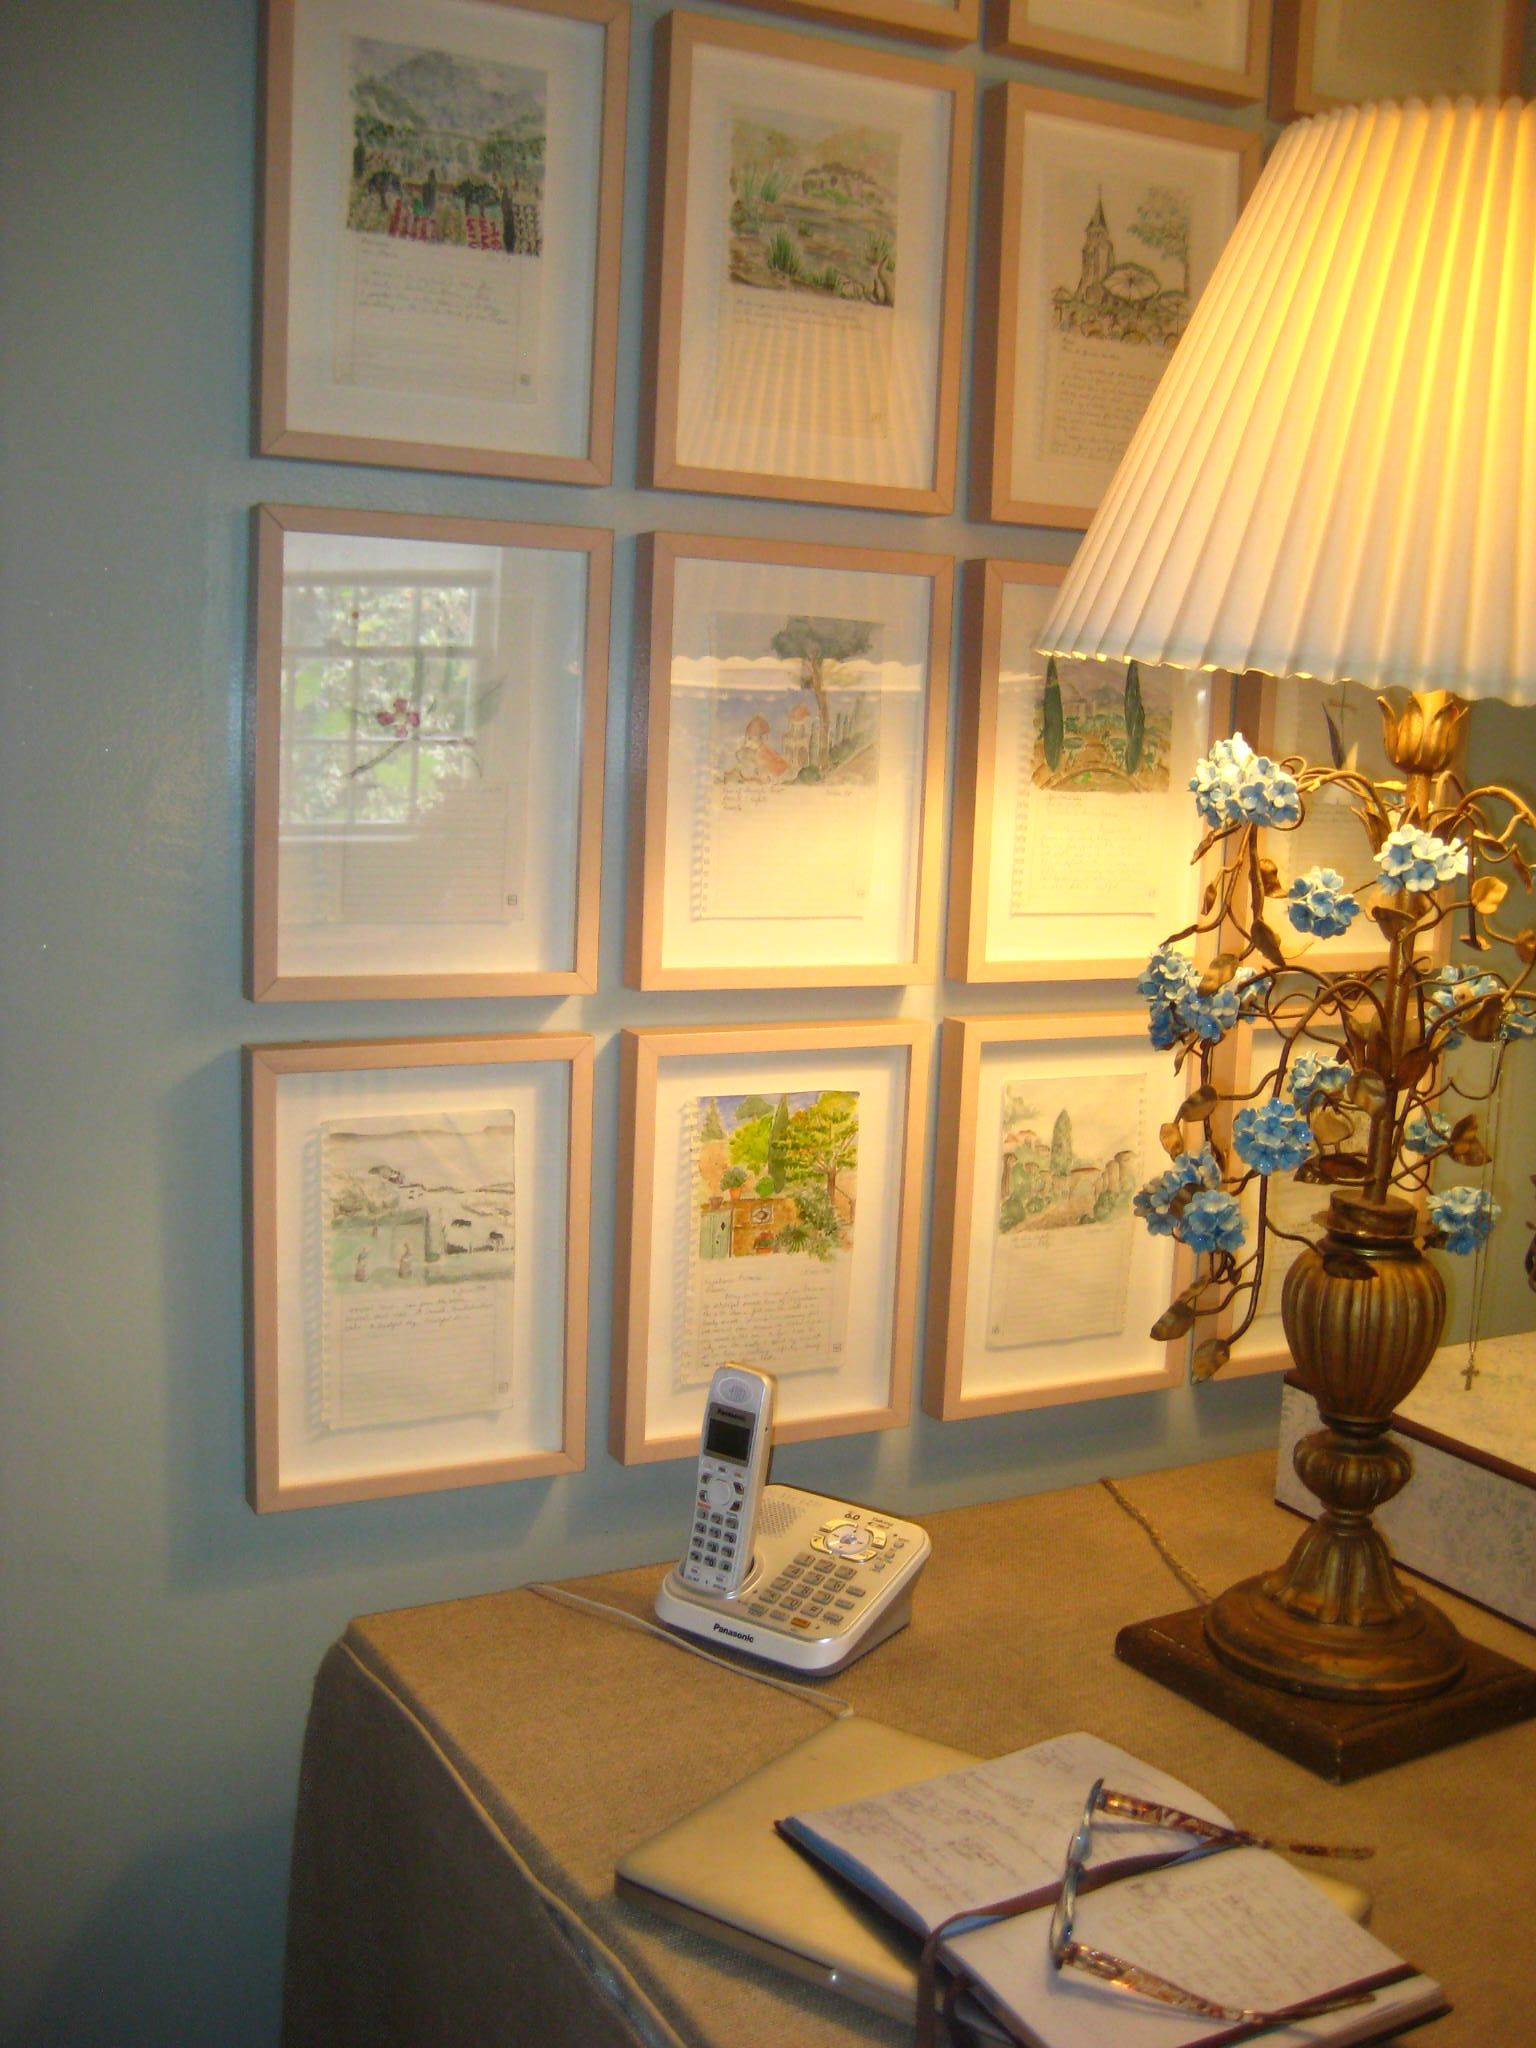 A Group Of Framed Pages From A Travel Sketchbook Makes A Charming Display And Forms The Impression Of A Window Bee Cotta Bedroom Art Interior Art Gallery Wall